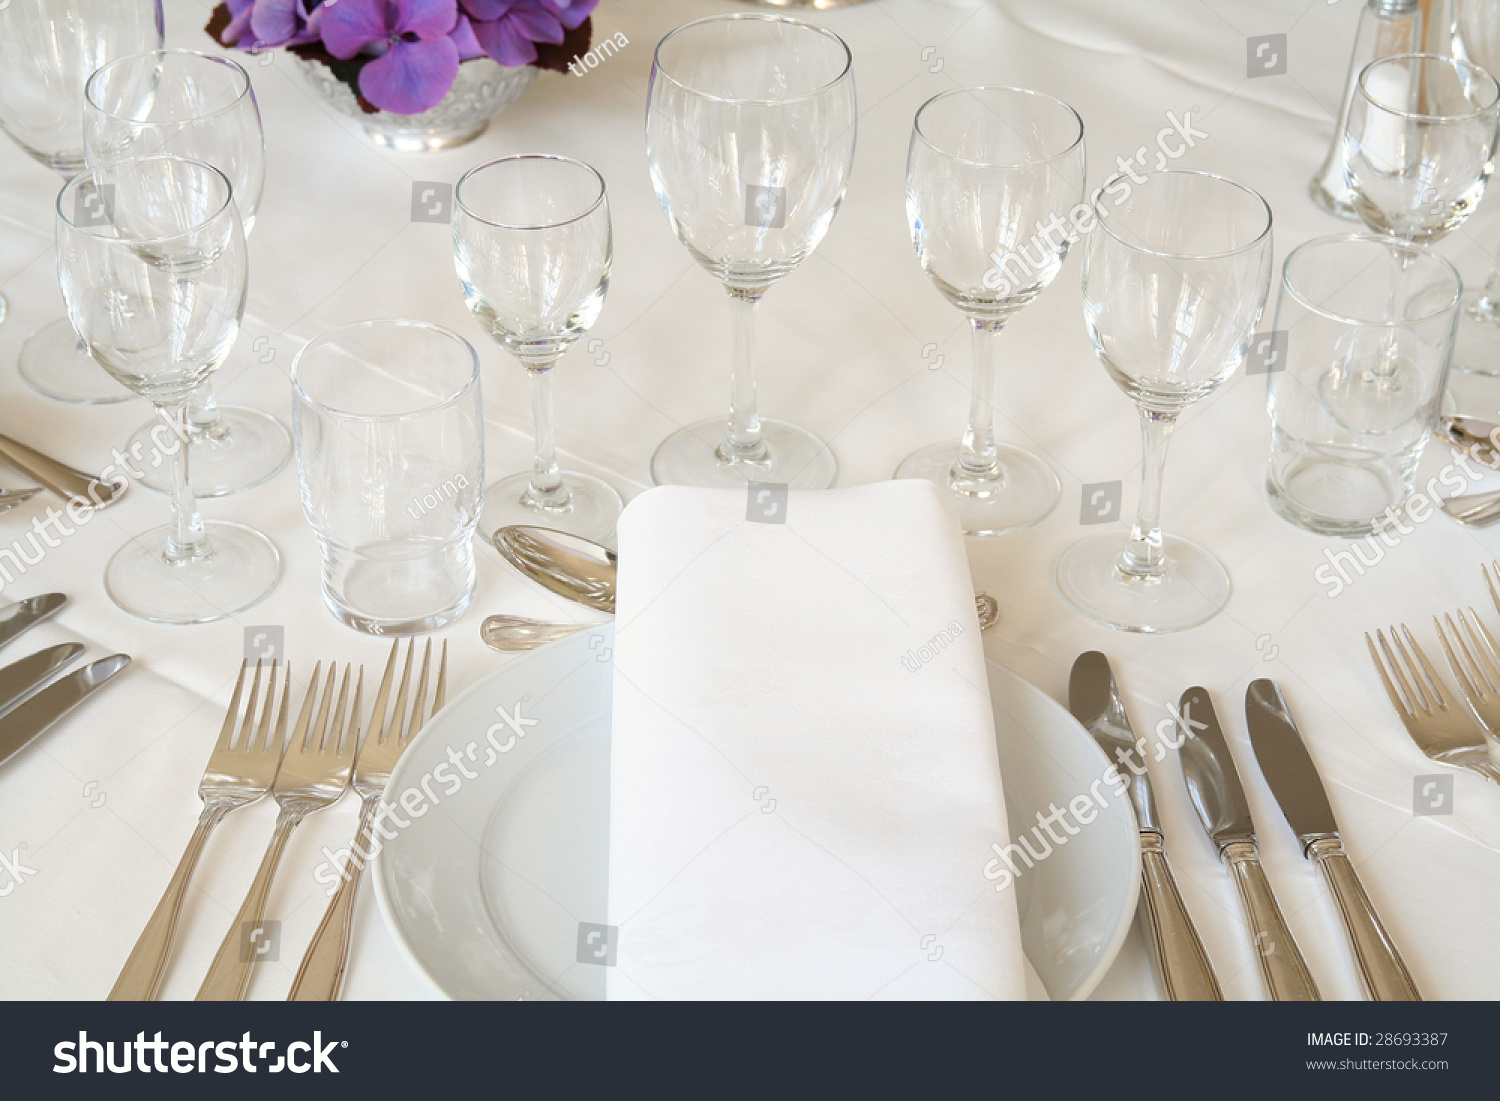 Table Setting For Fine Dining Or Party Cutlery And Plate In Restaurant Set U